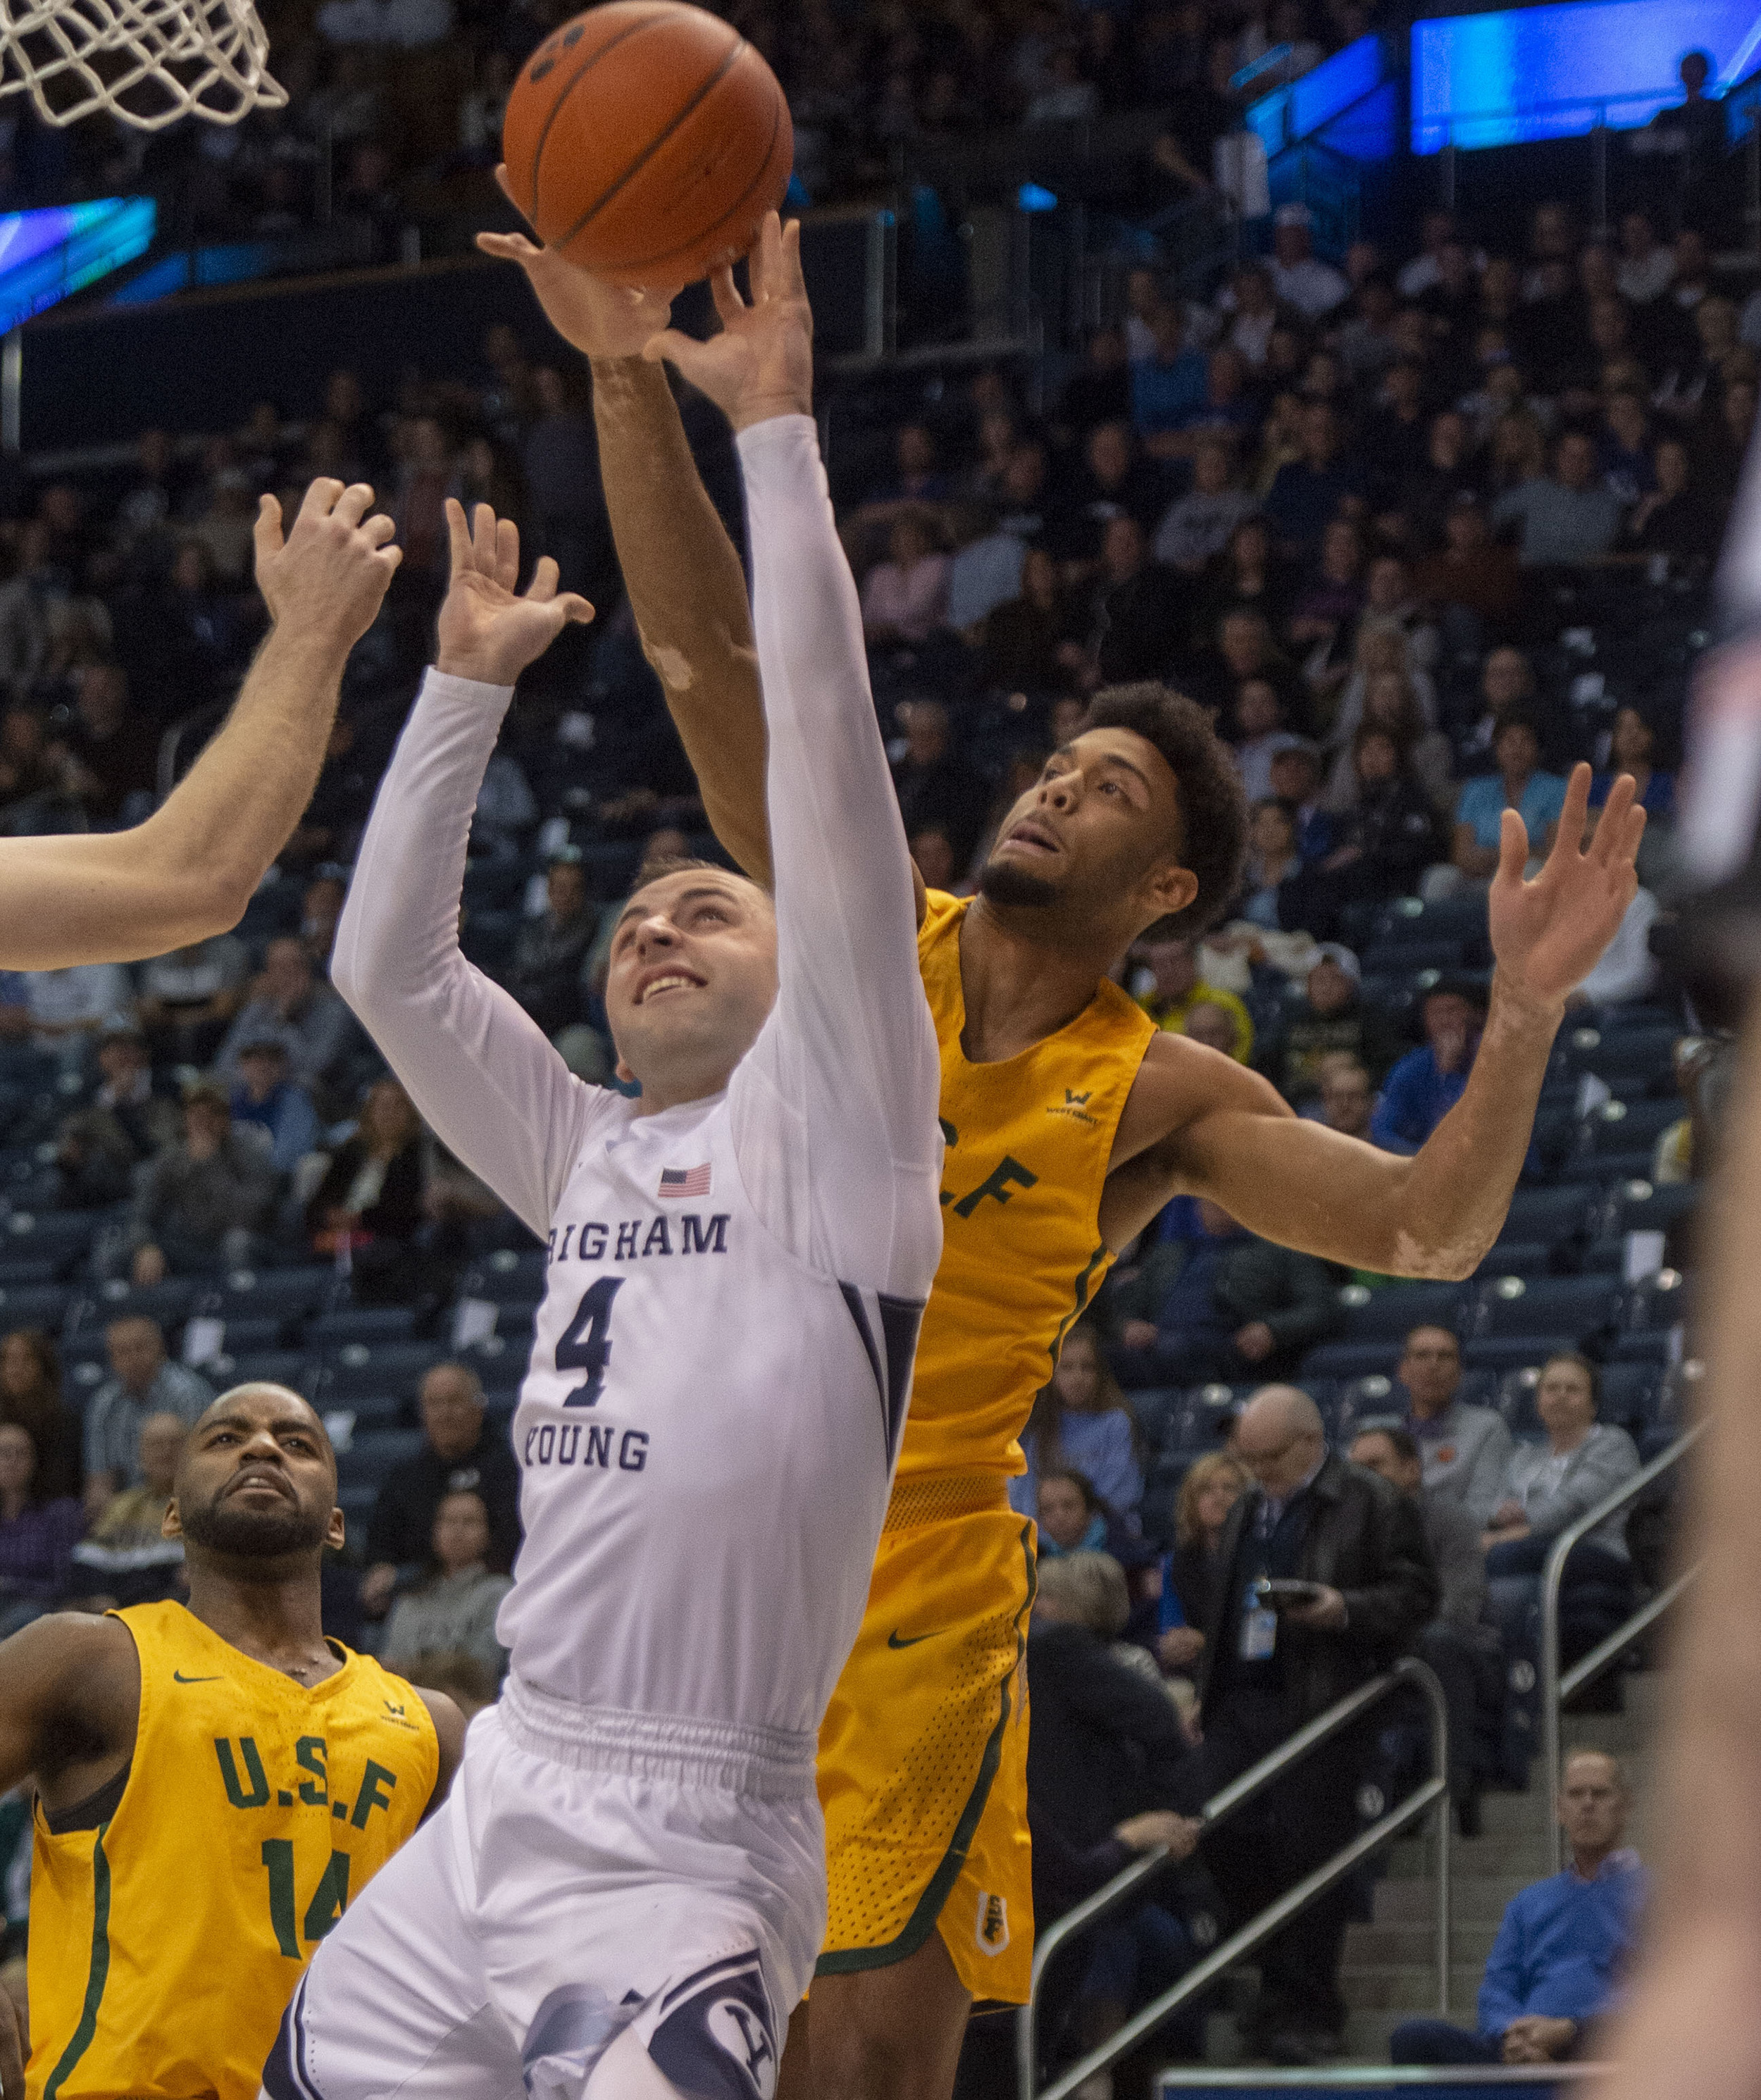 (Rick Egan  |  The Salt Lake Tribune)  San Francisco Dons forward Nate Renfro (15) blocks a shot by Brigham Young Cougars guard Nick Emery (4), in WCC basketball action at the Marriott Center, Thursday, February 21, 2018.